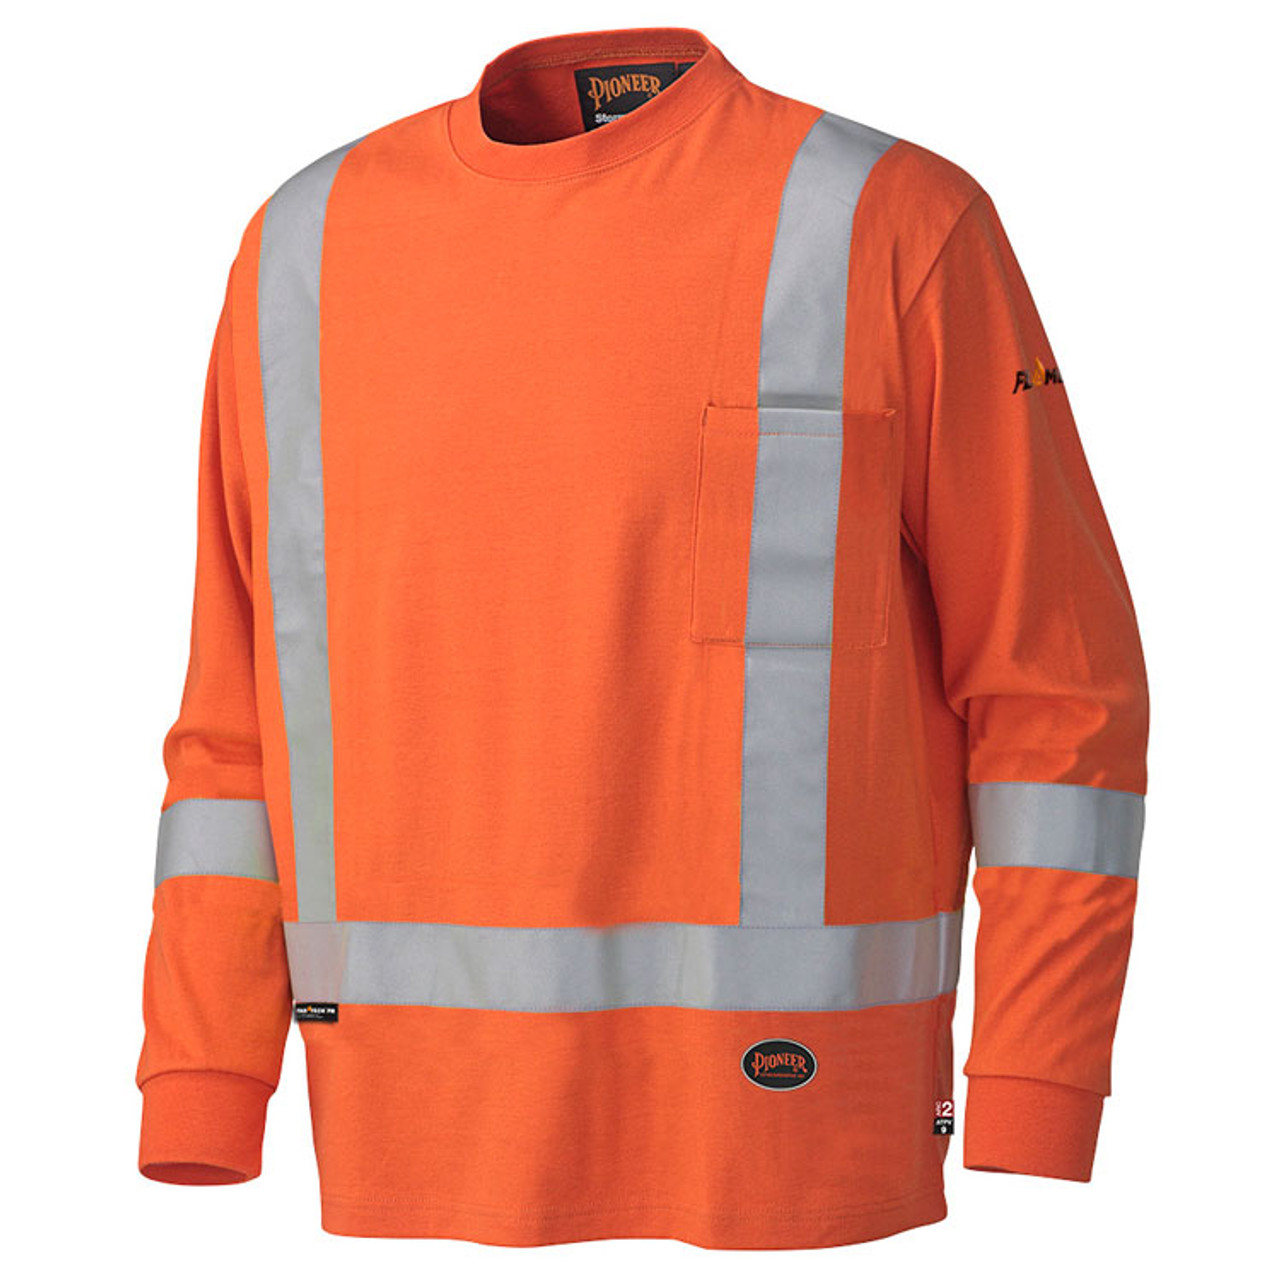 9a11acb5f06 FR Hi-Vis Cotton Long-Sleeve Shirt CSA